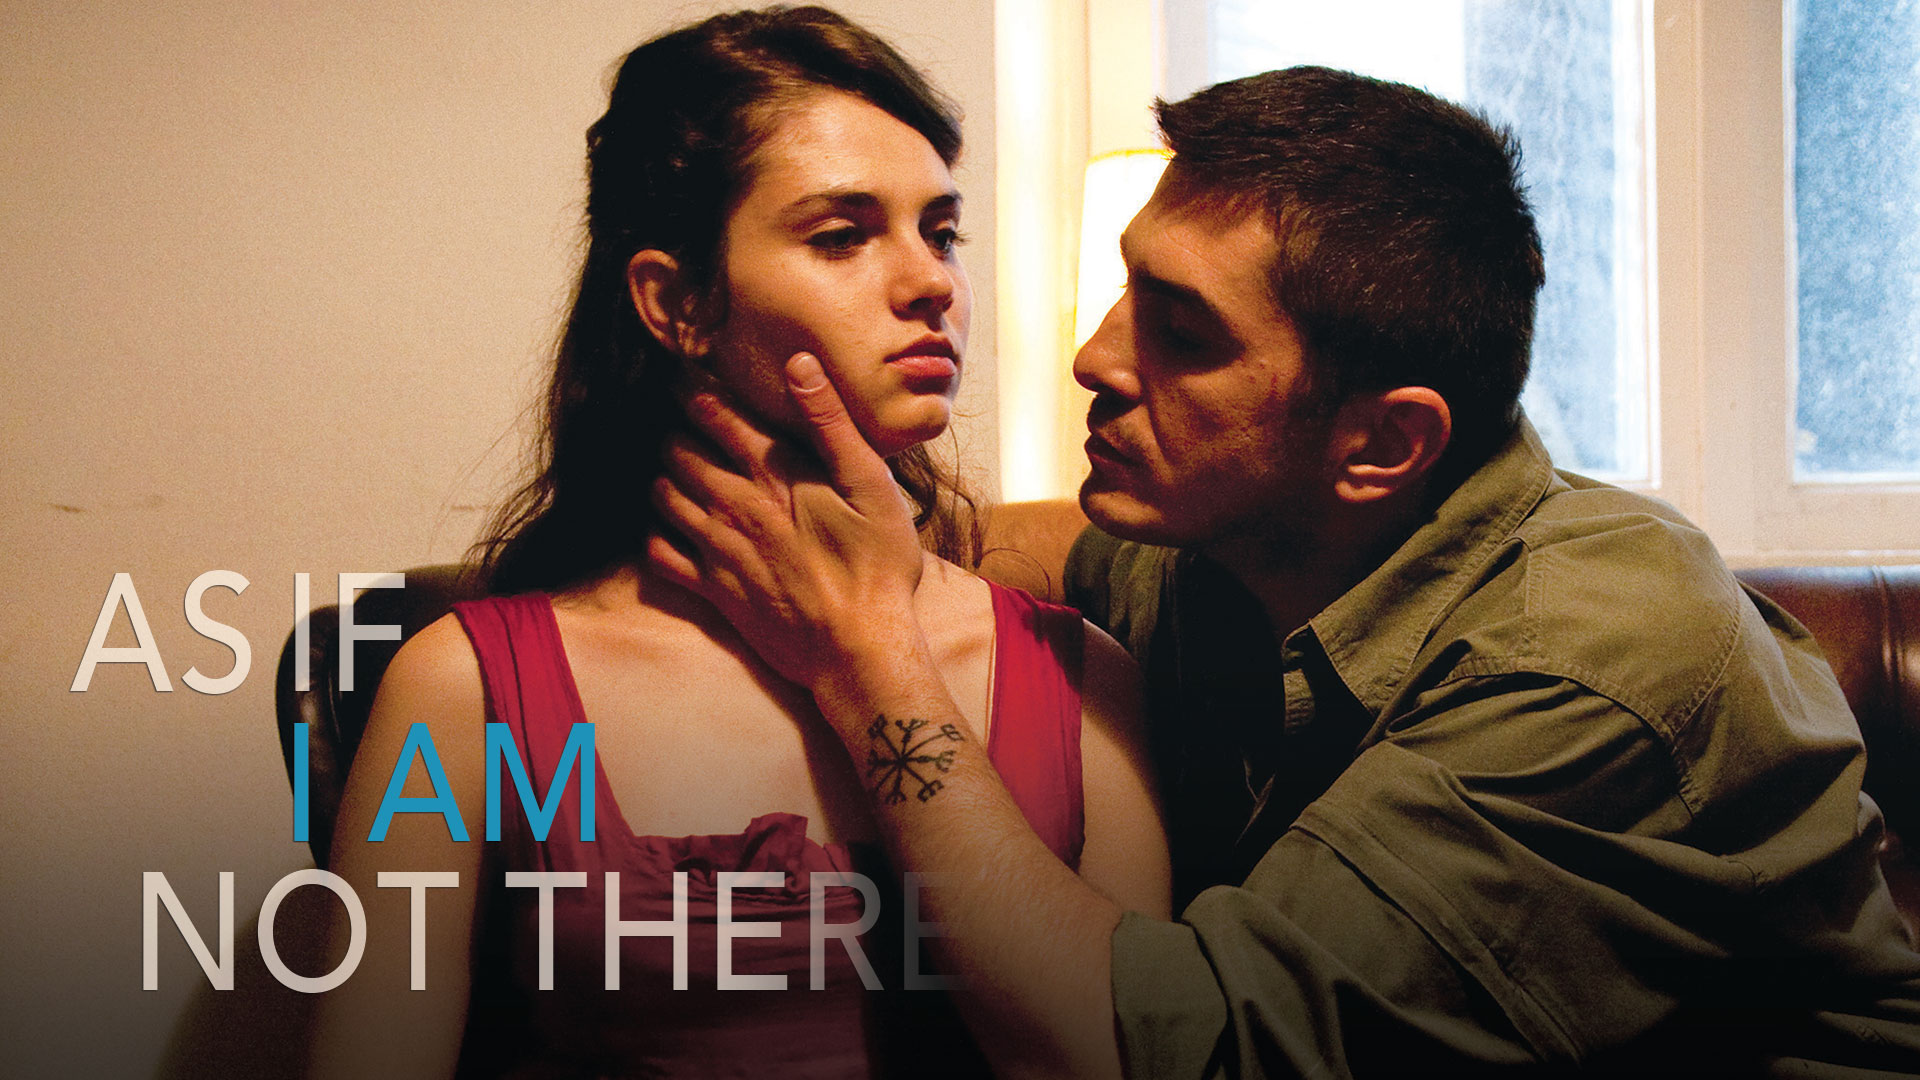 As If I Am Not There - Watch Now on Amazon Video